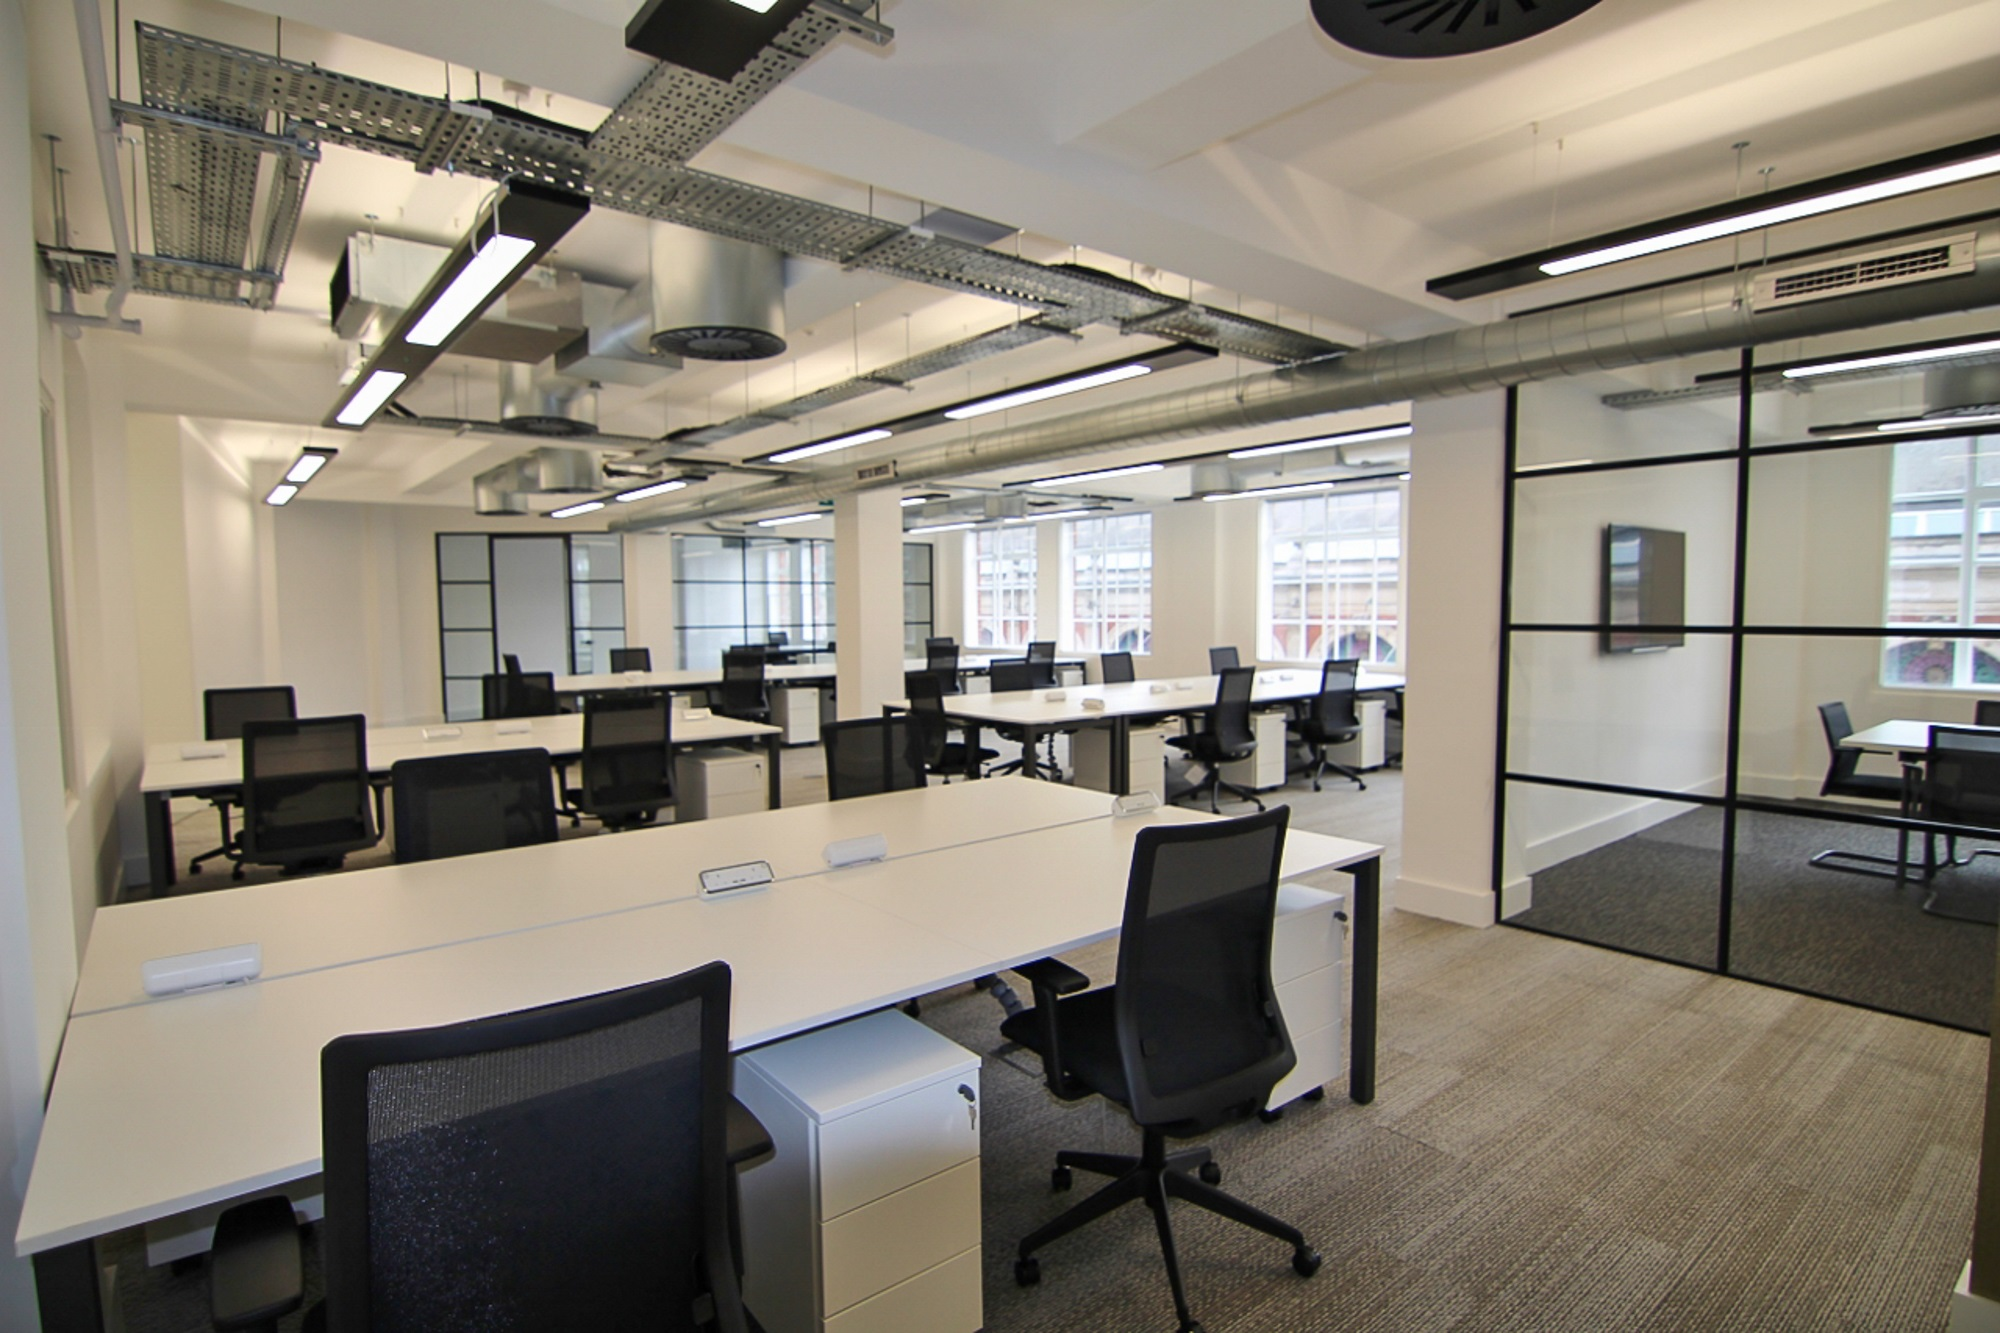 empty office with chairs, desk, and exposed ceiling